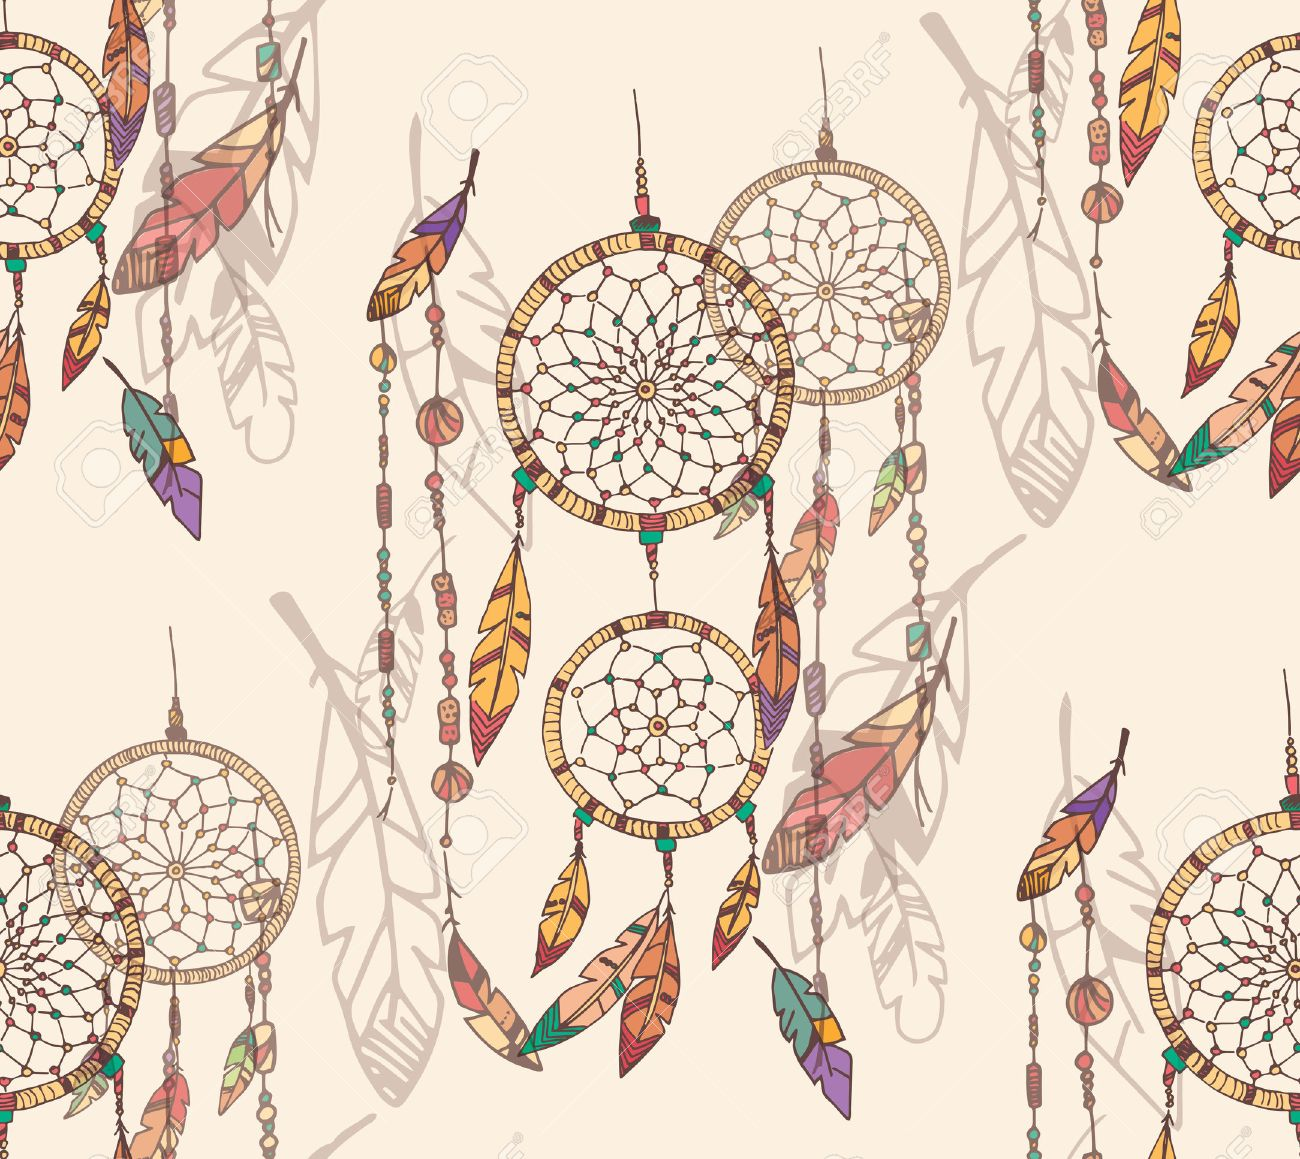 Bohemian Dream Catcher With Beads And Feathers Seamless Pattern 1300x1159